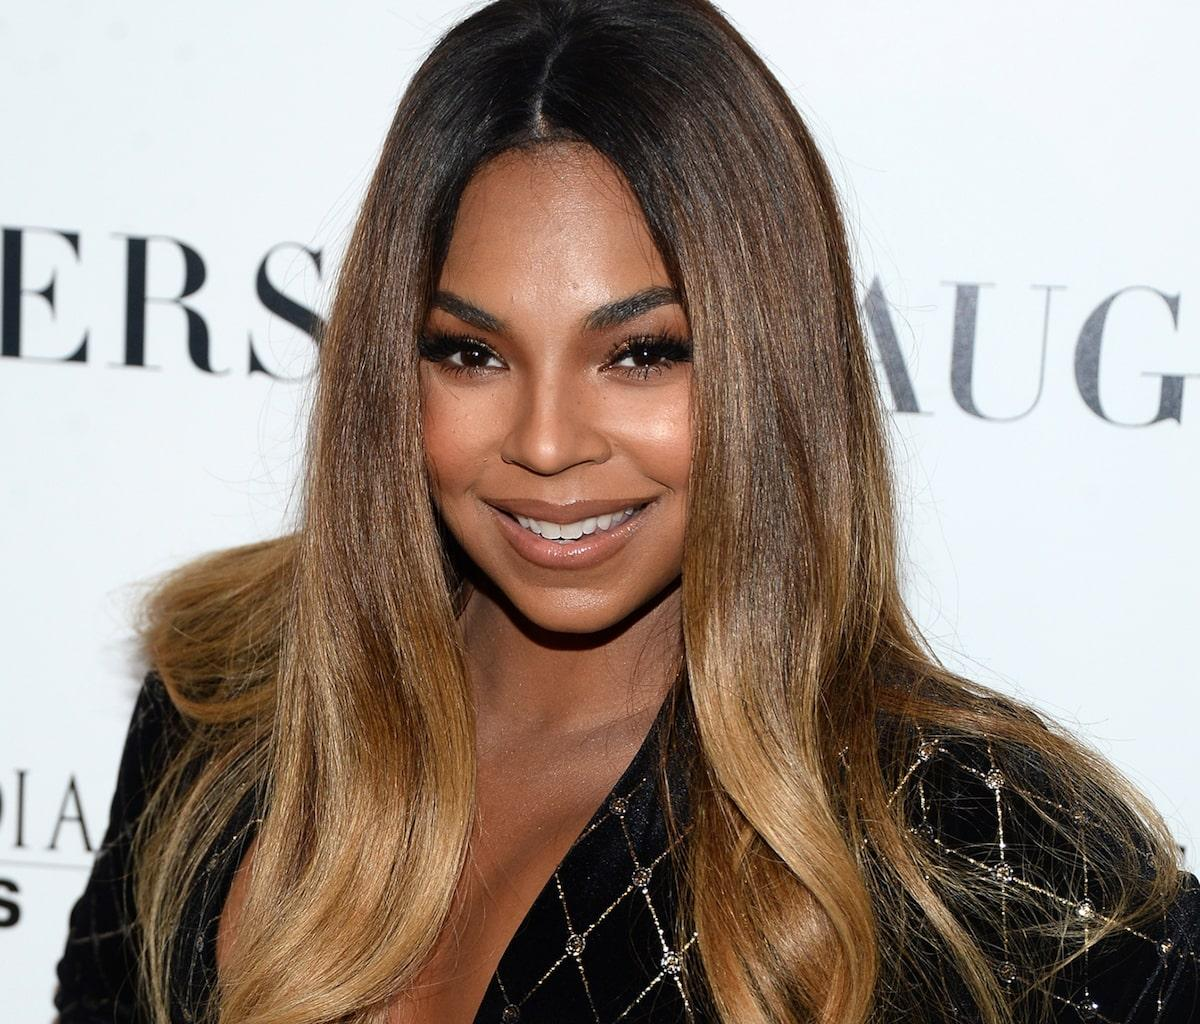 Ashanti Announces She Is Covid Free -- Fans Ecstatic As They Await Rescheduled Versus